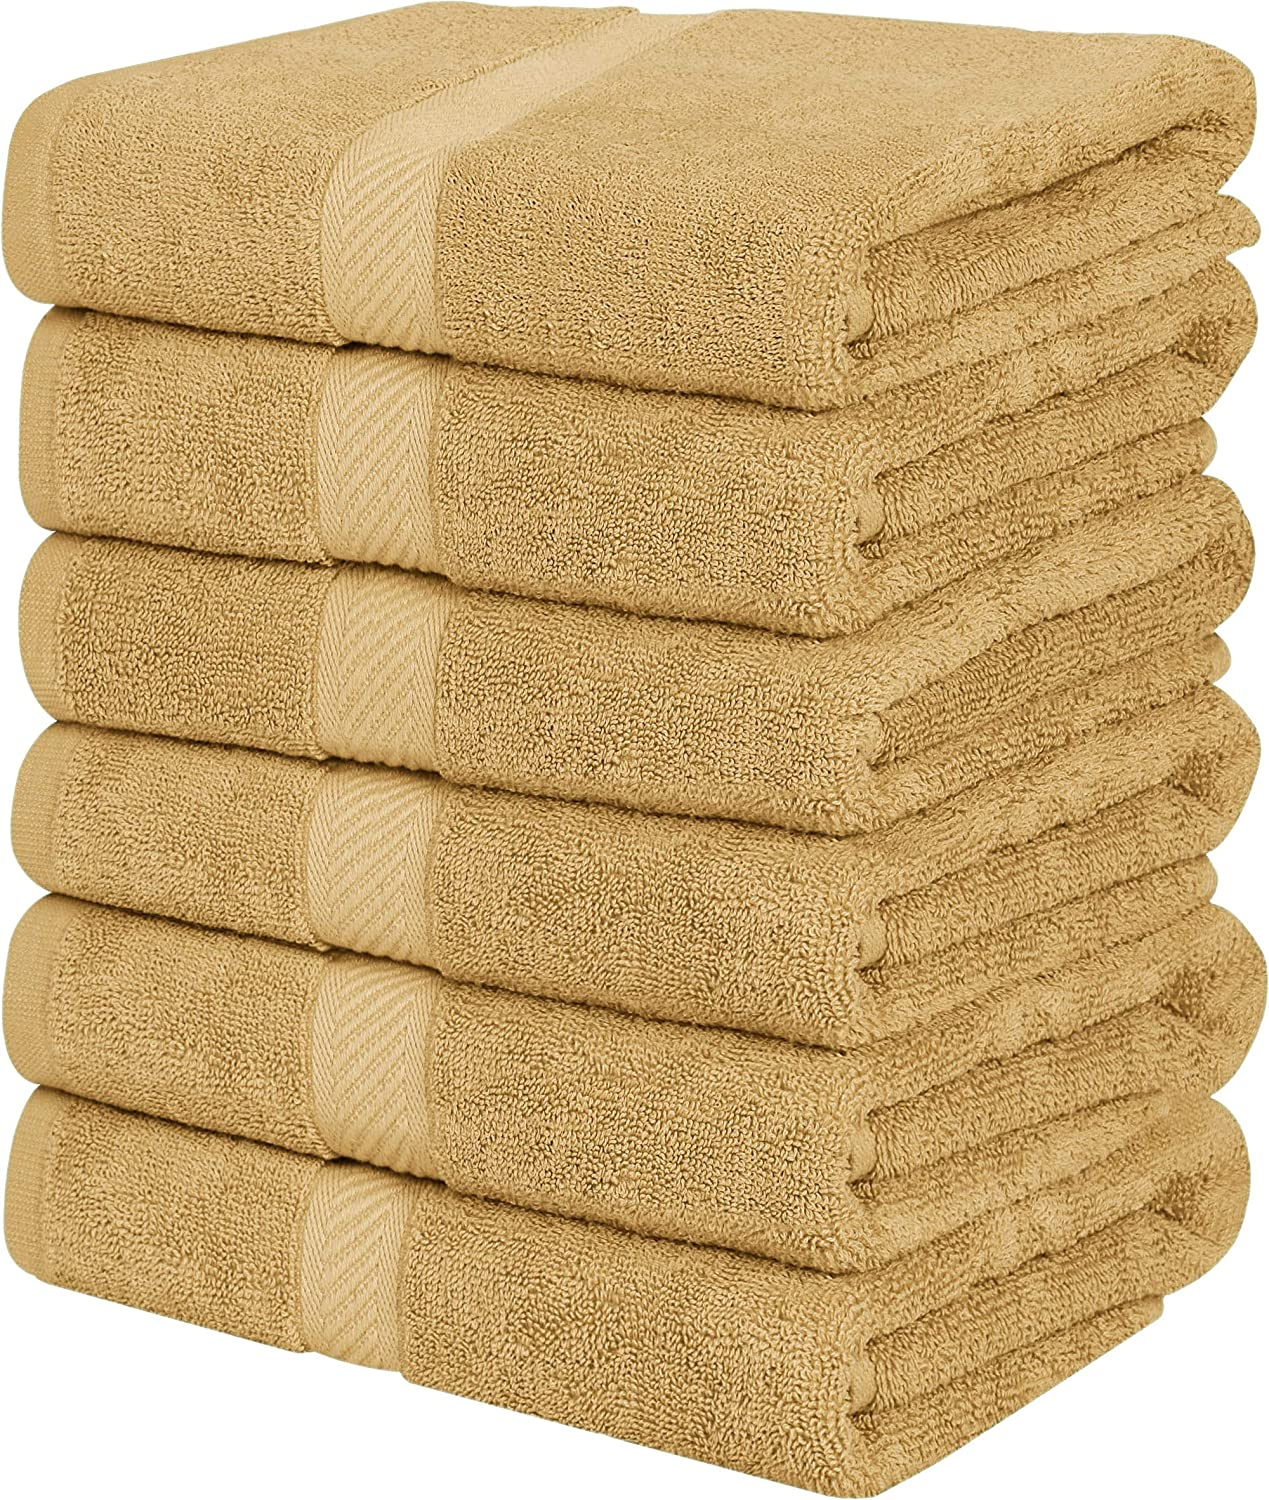 Amazon Com Utopia Towels Small Cotton Towels Beige 22 X 44 Inches Towels For Pool Spa And Gym Lightweight And Highly Absorbent Quick Drying Towels Pack Of 6 Kitchen Dining